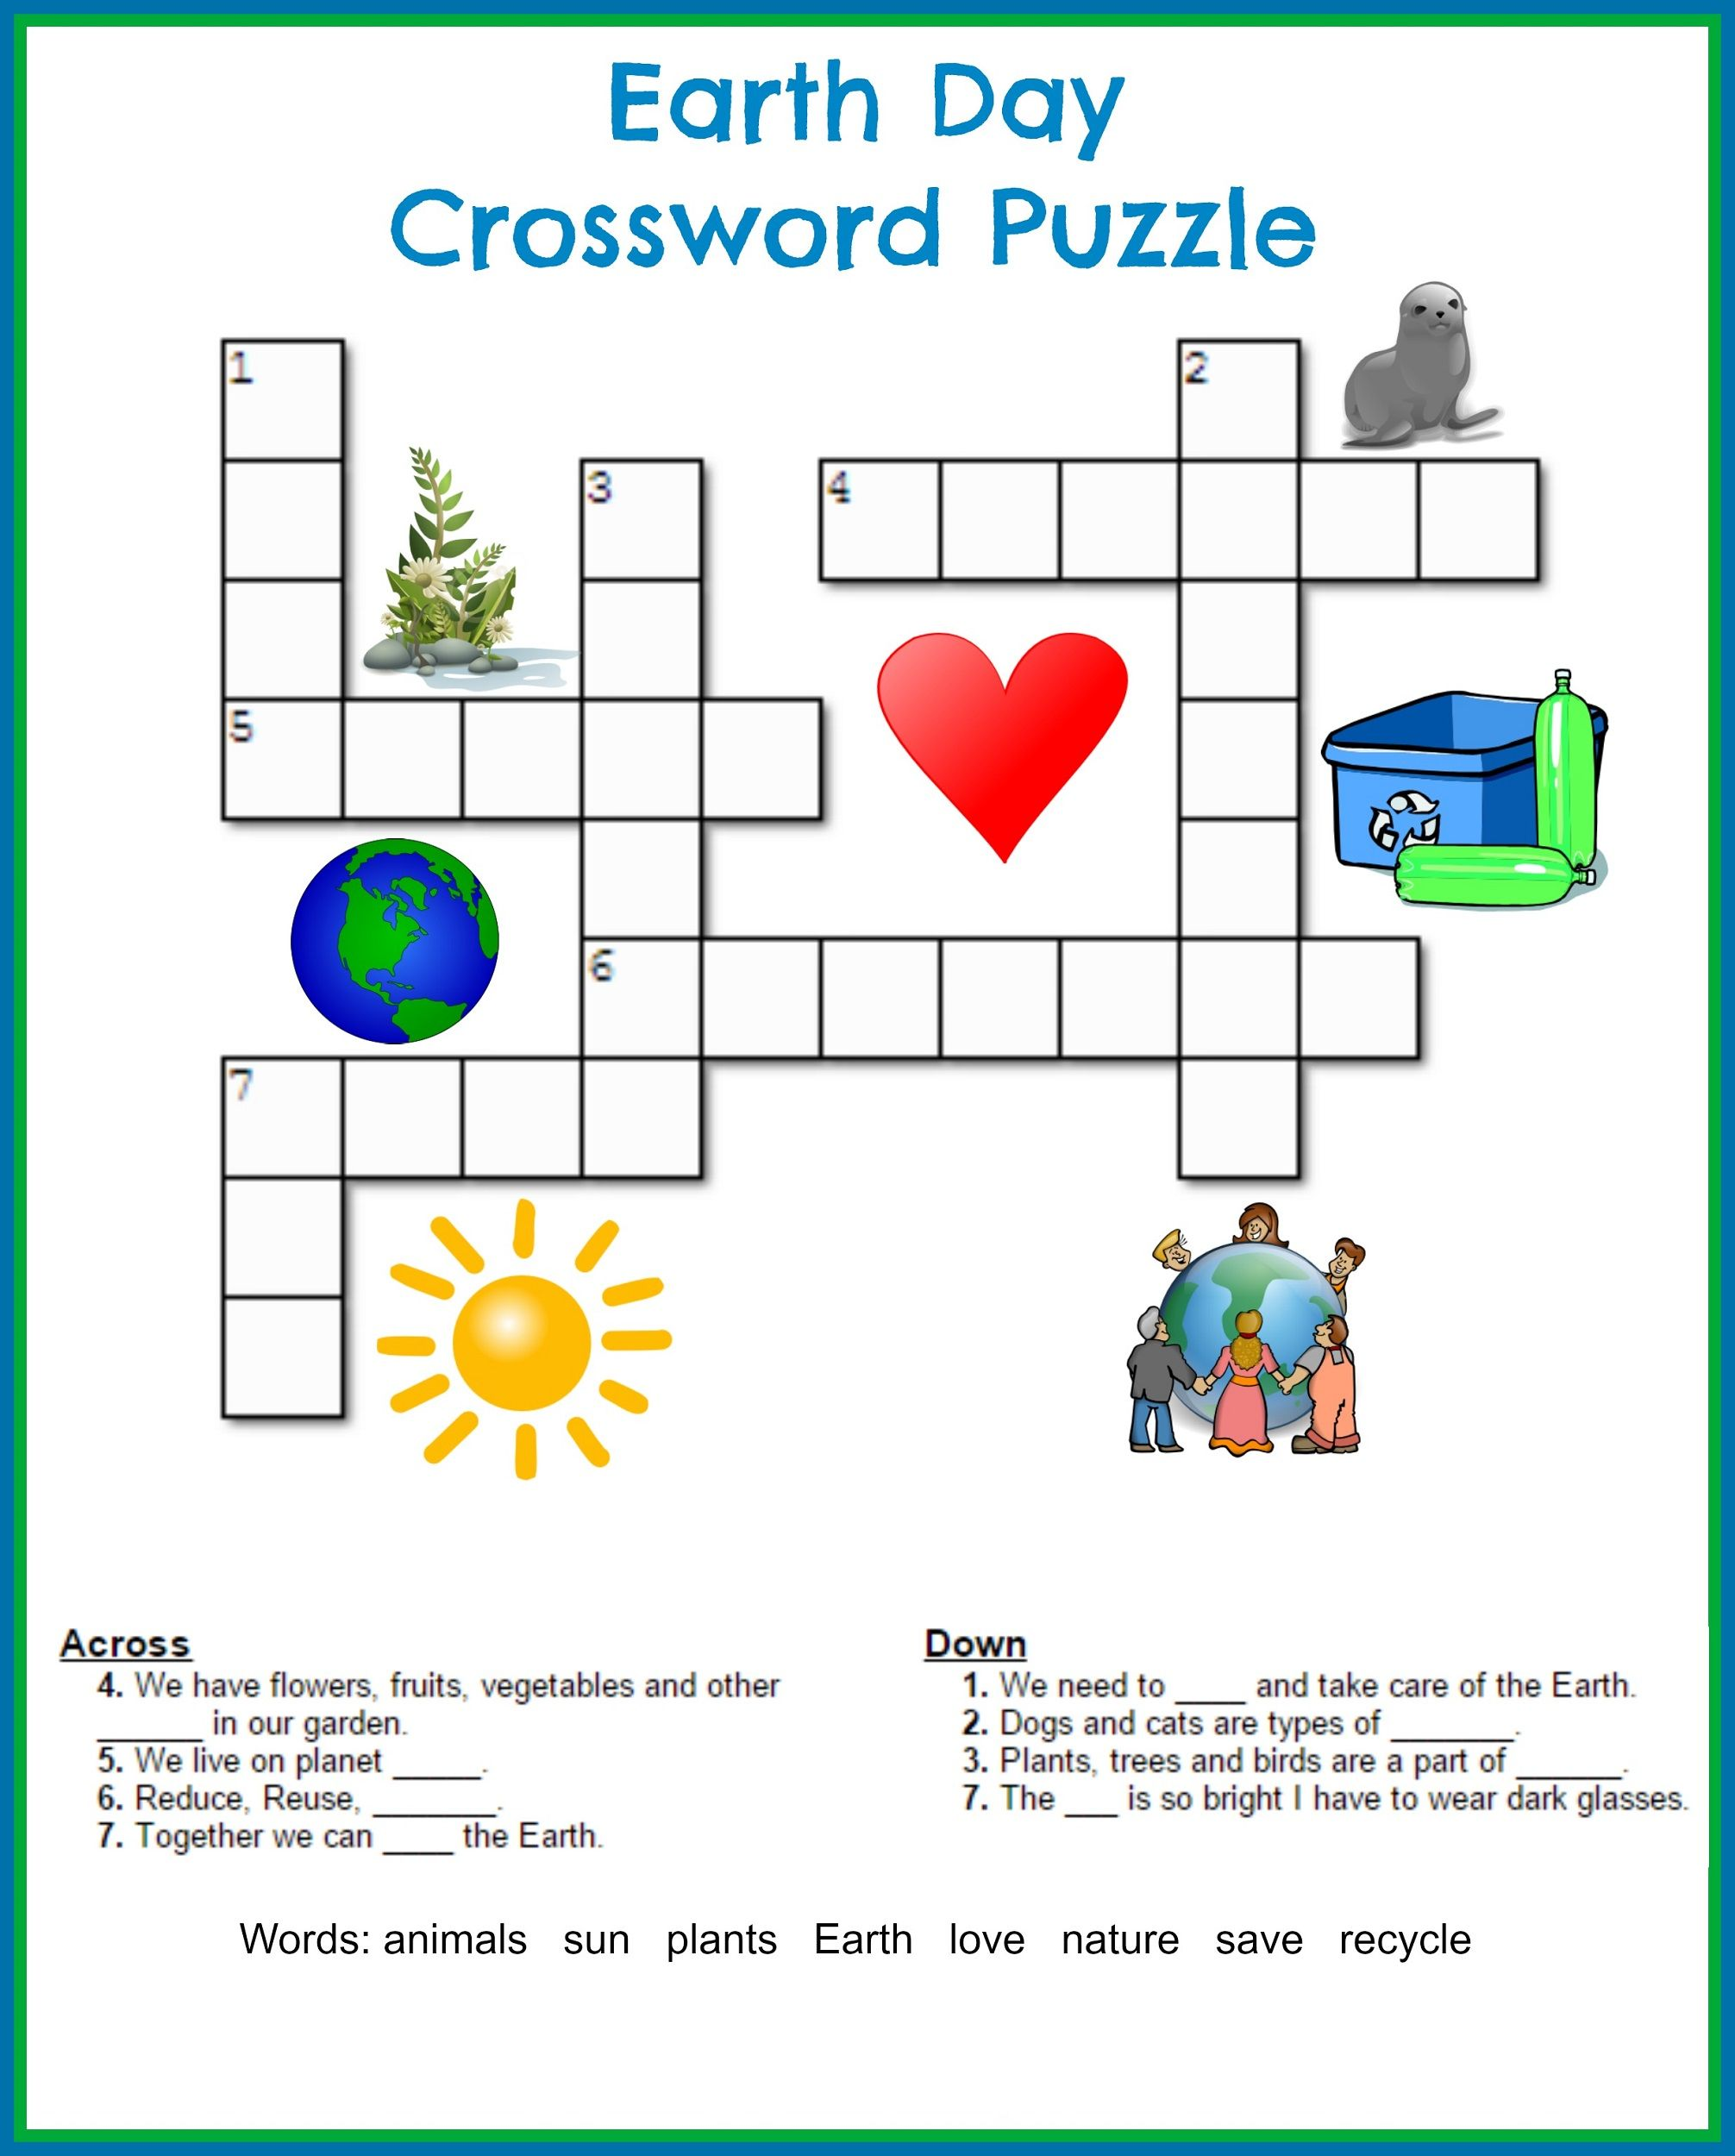 Lover of flowers crossword